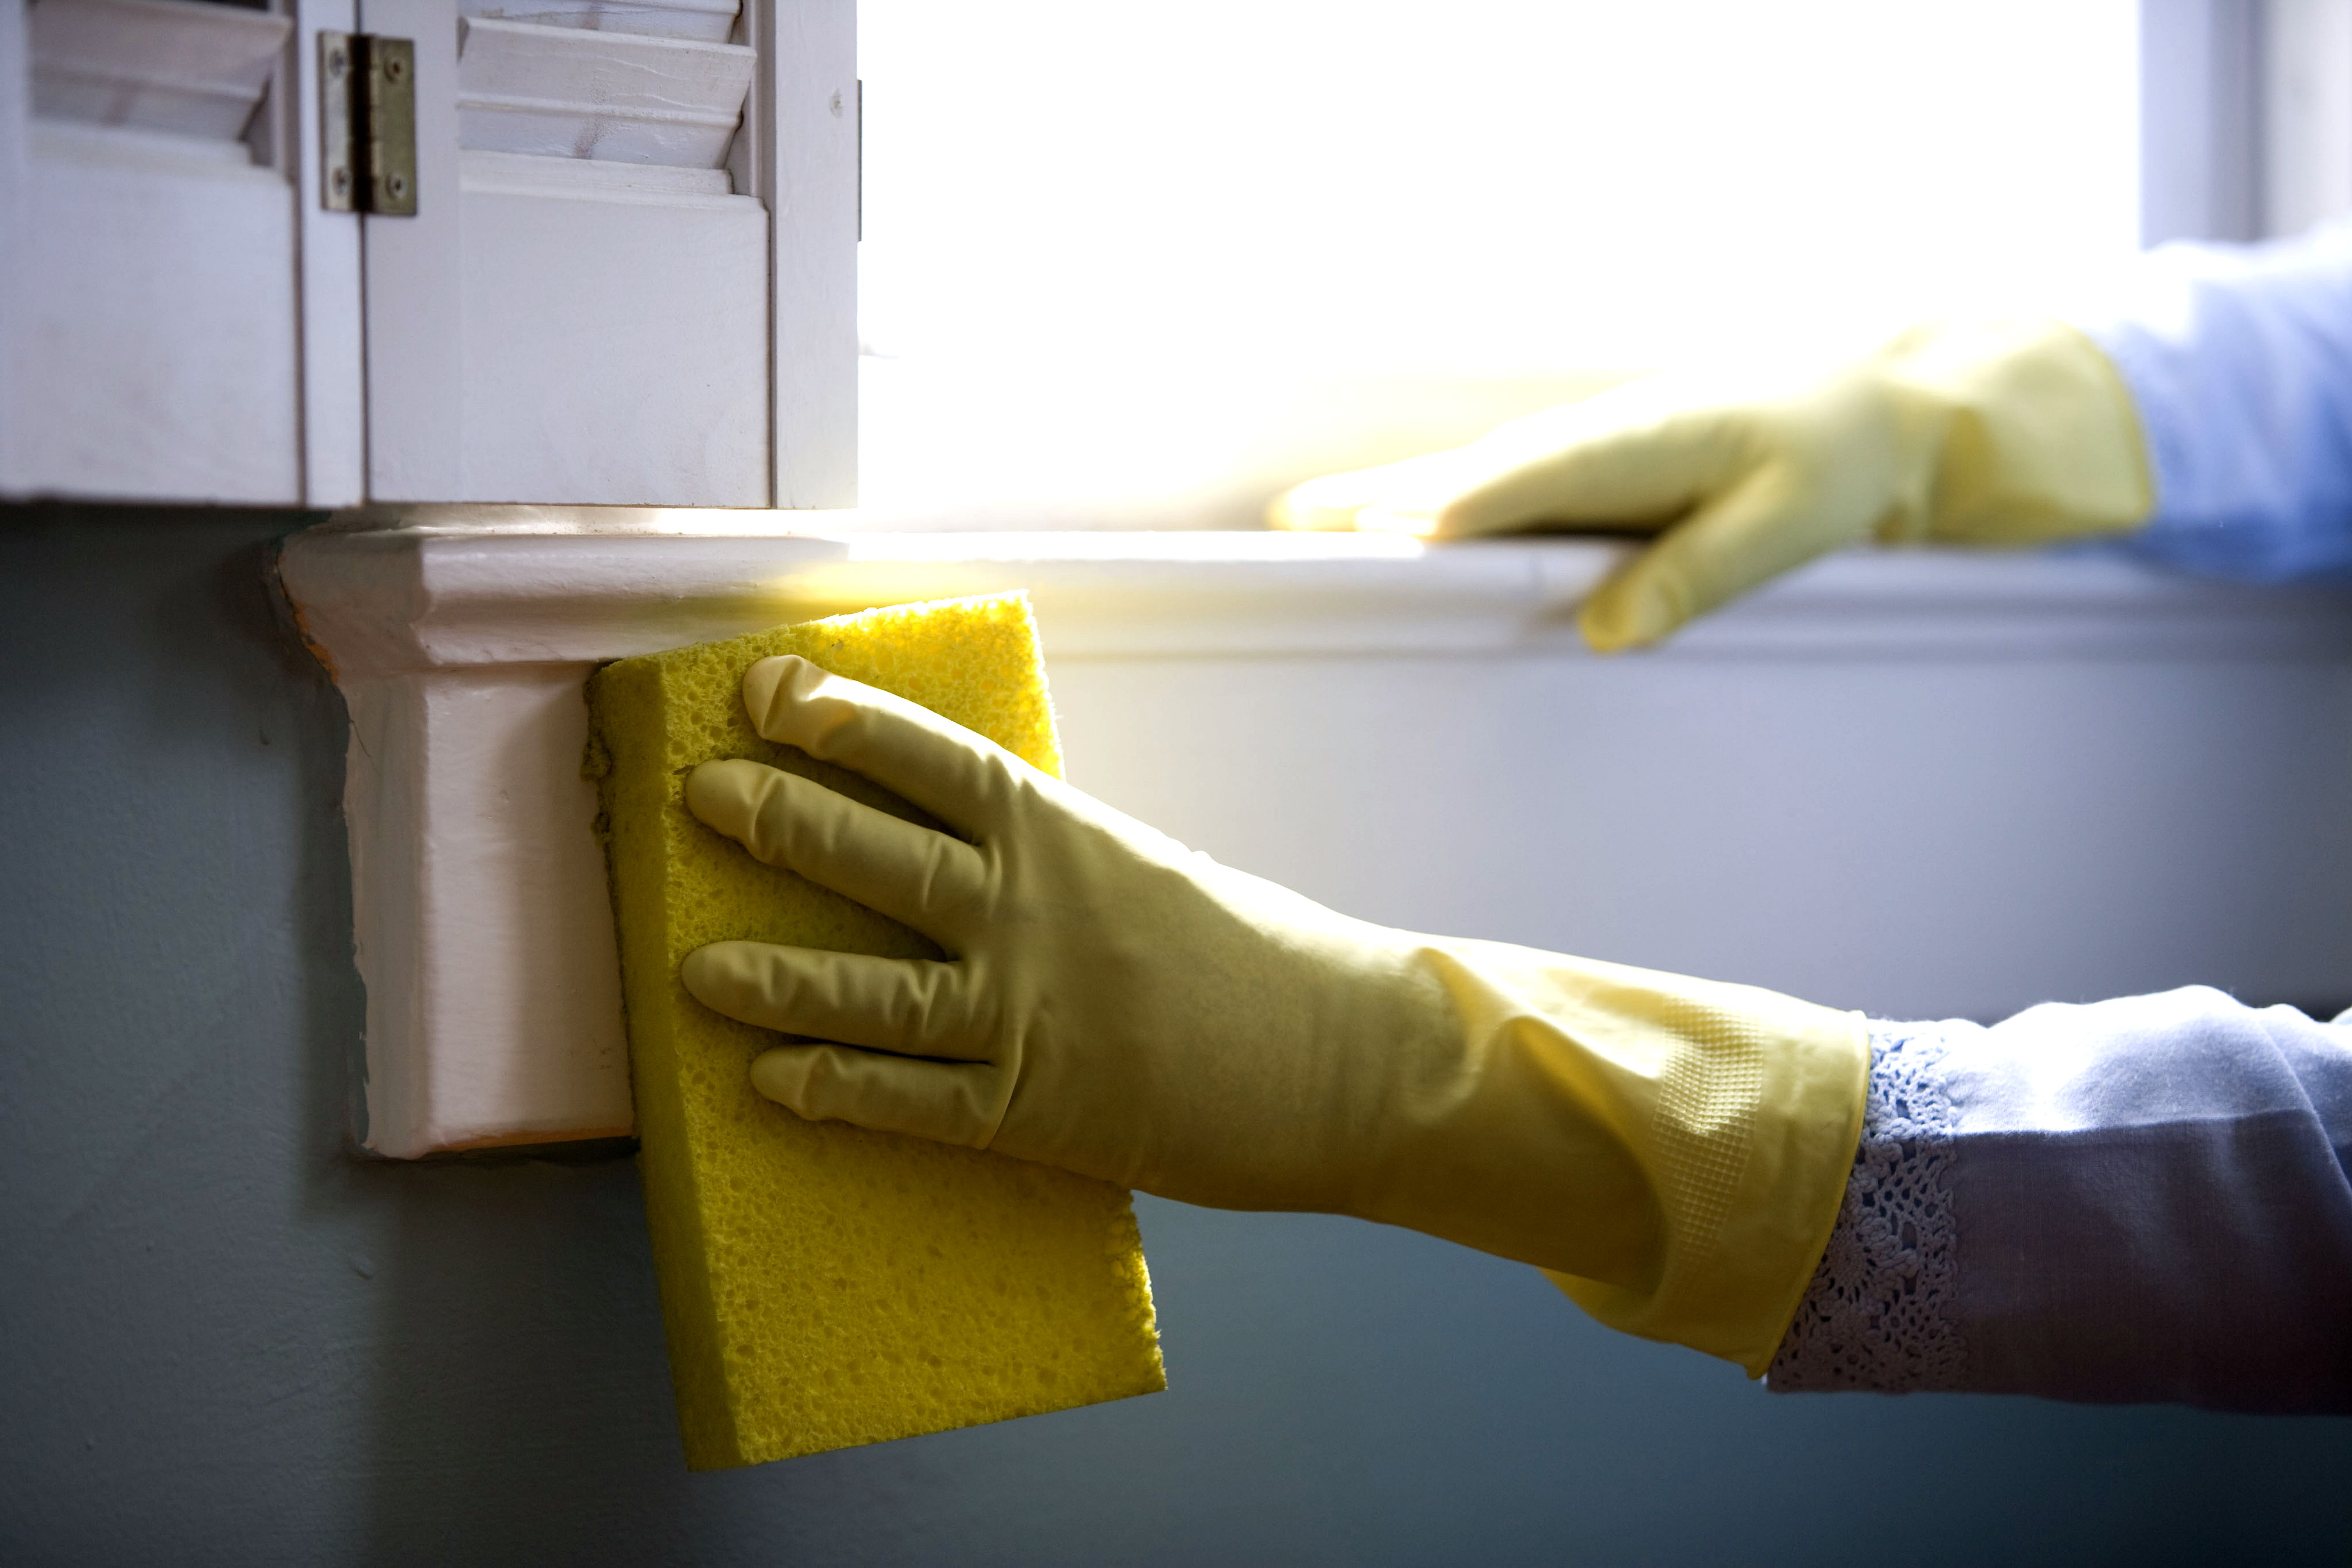 window-cleaning-in-protective-rubber-gloves-washing-windows.jpg